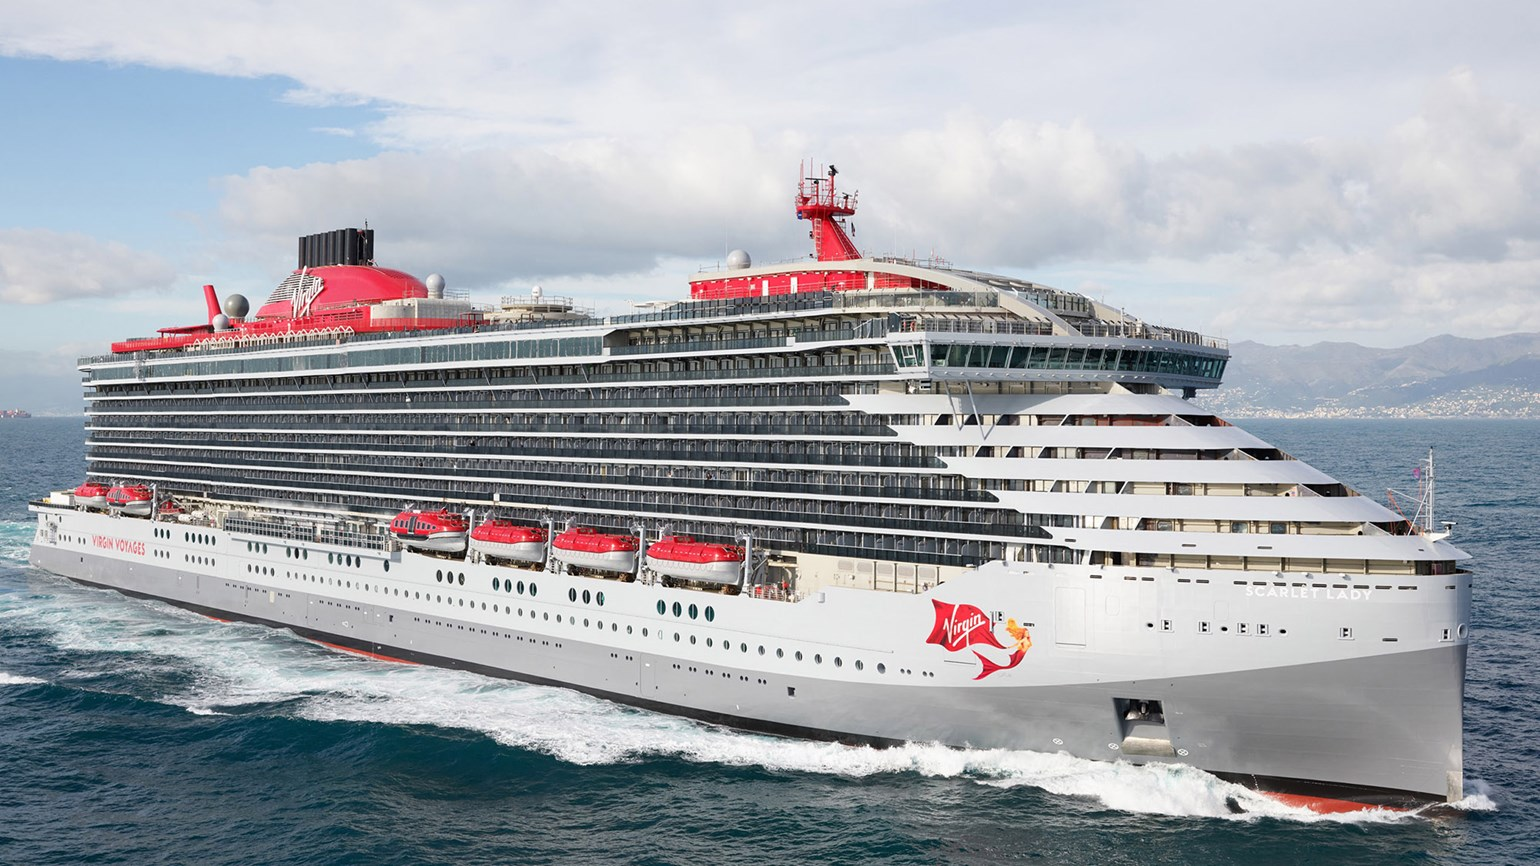 Virgin Voyages takes delivery of first ship, Scarlet Lady